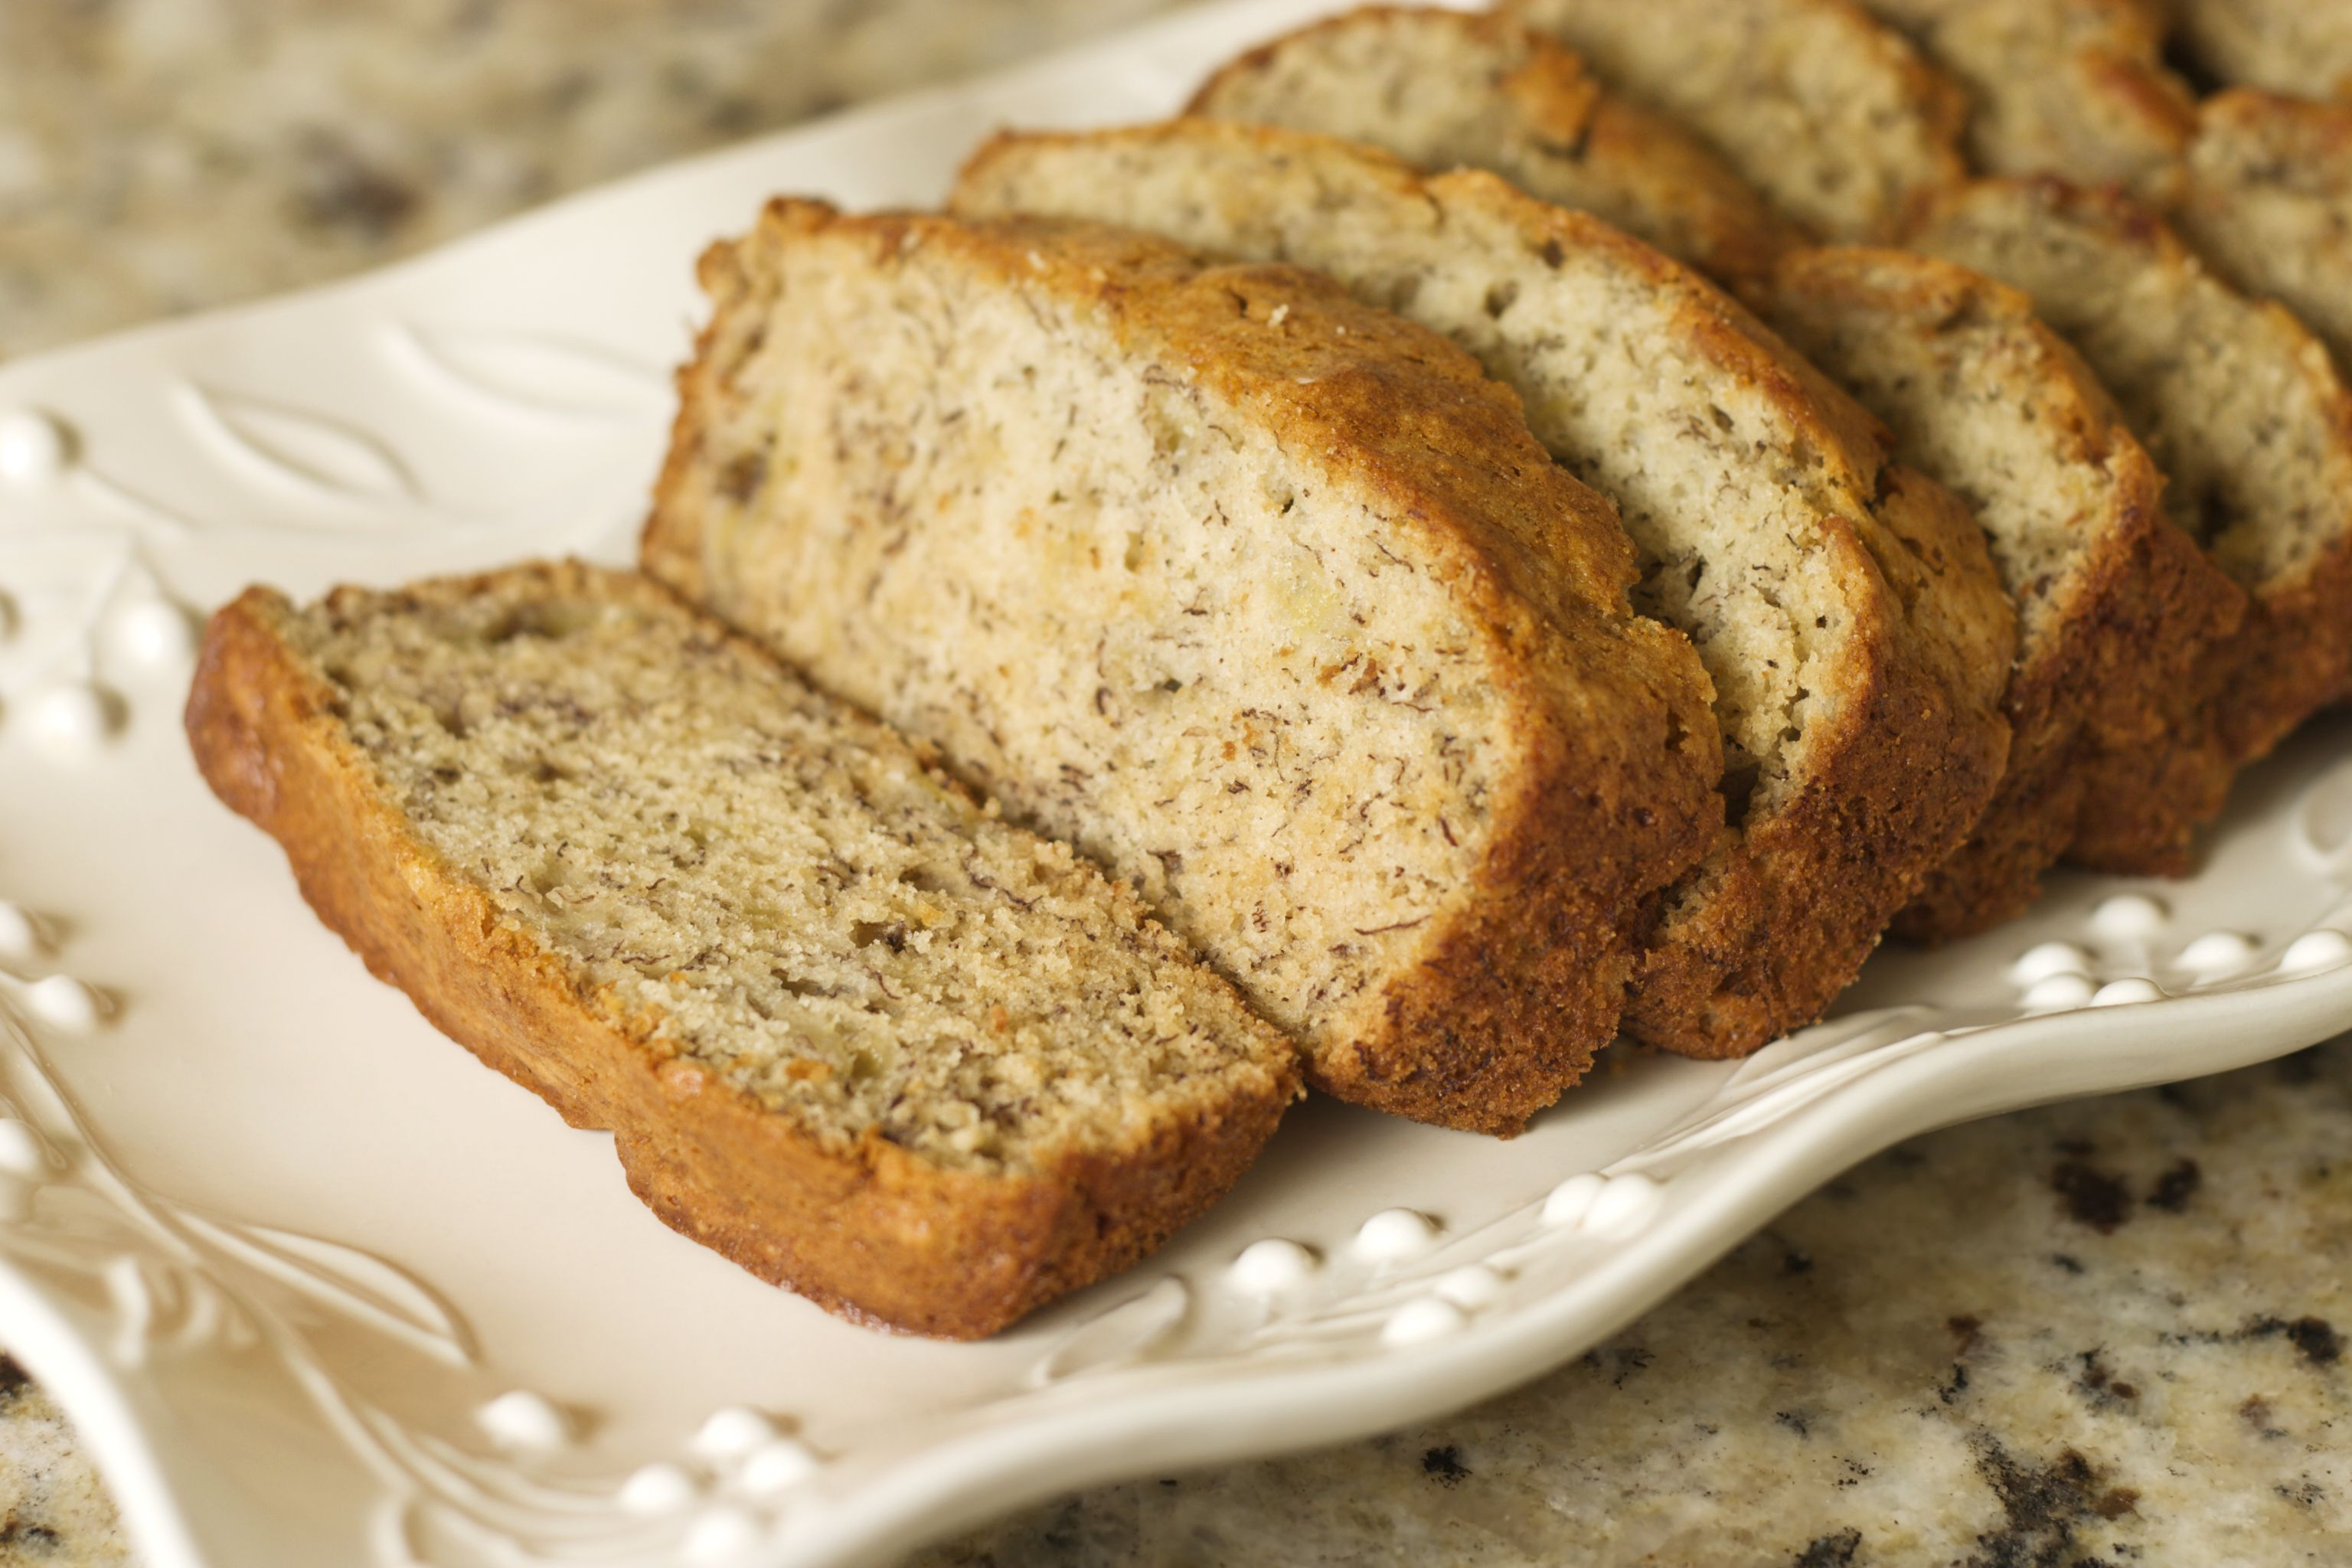 Make One Egg Banana Bread With This Easy Recipe